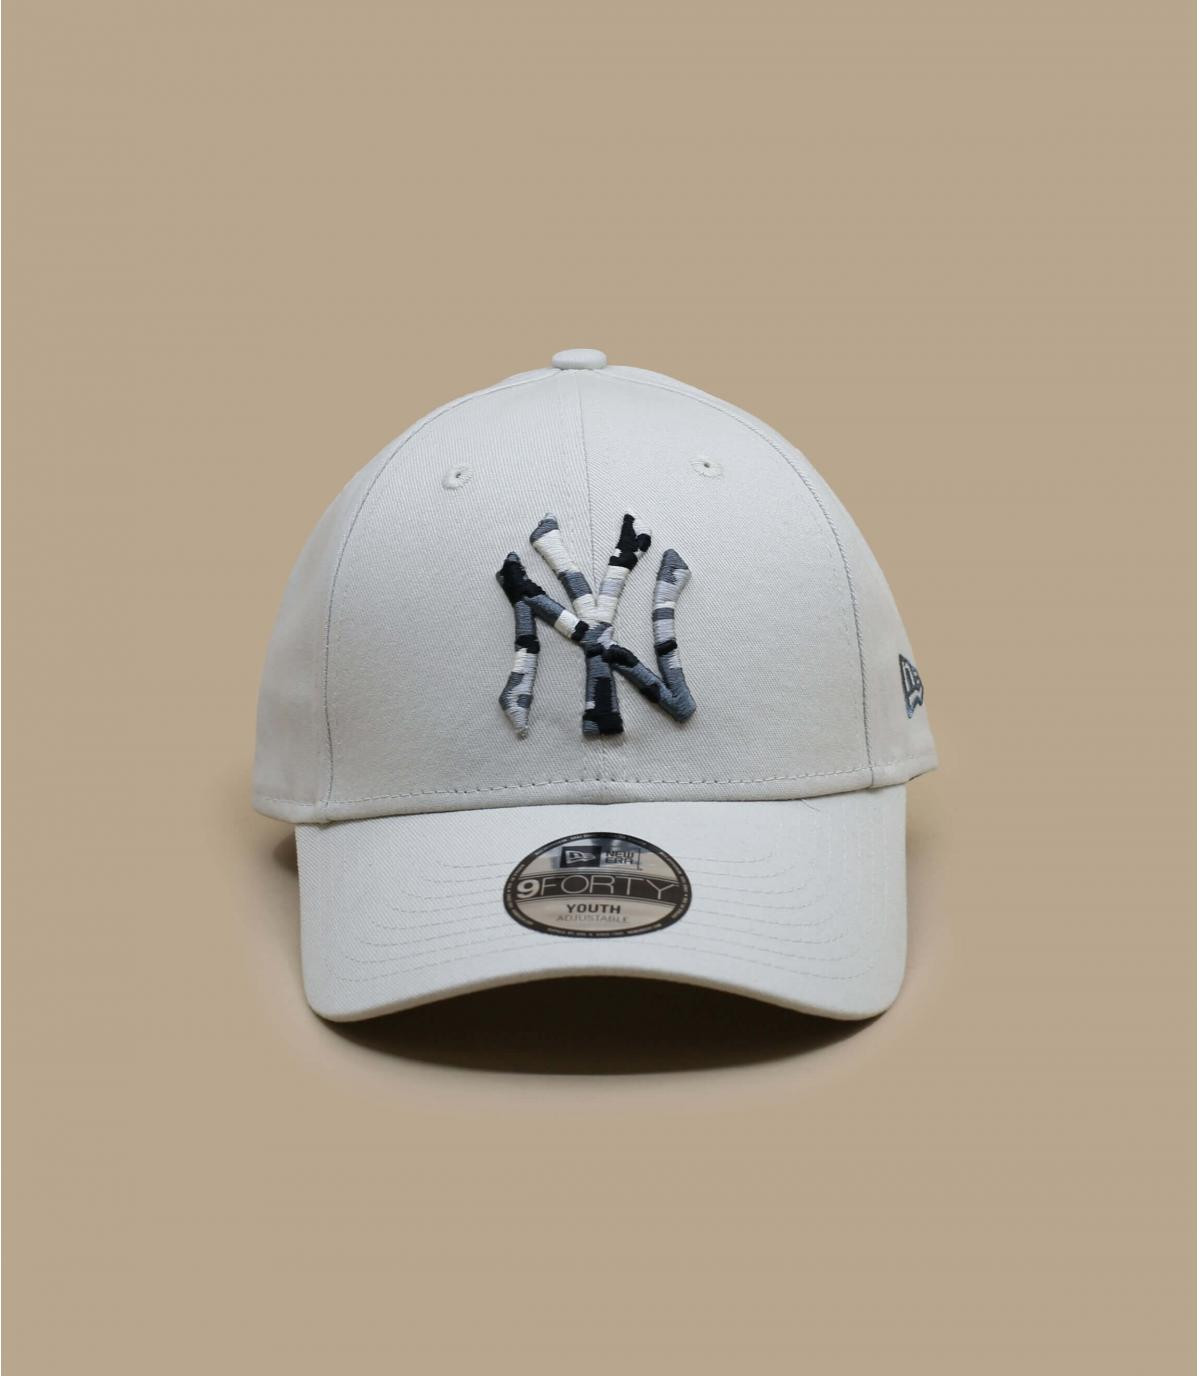 Détails Casquette Kids Camo Infill NY stone urban - image 2